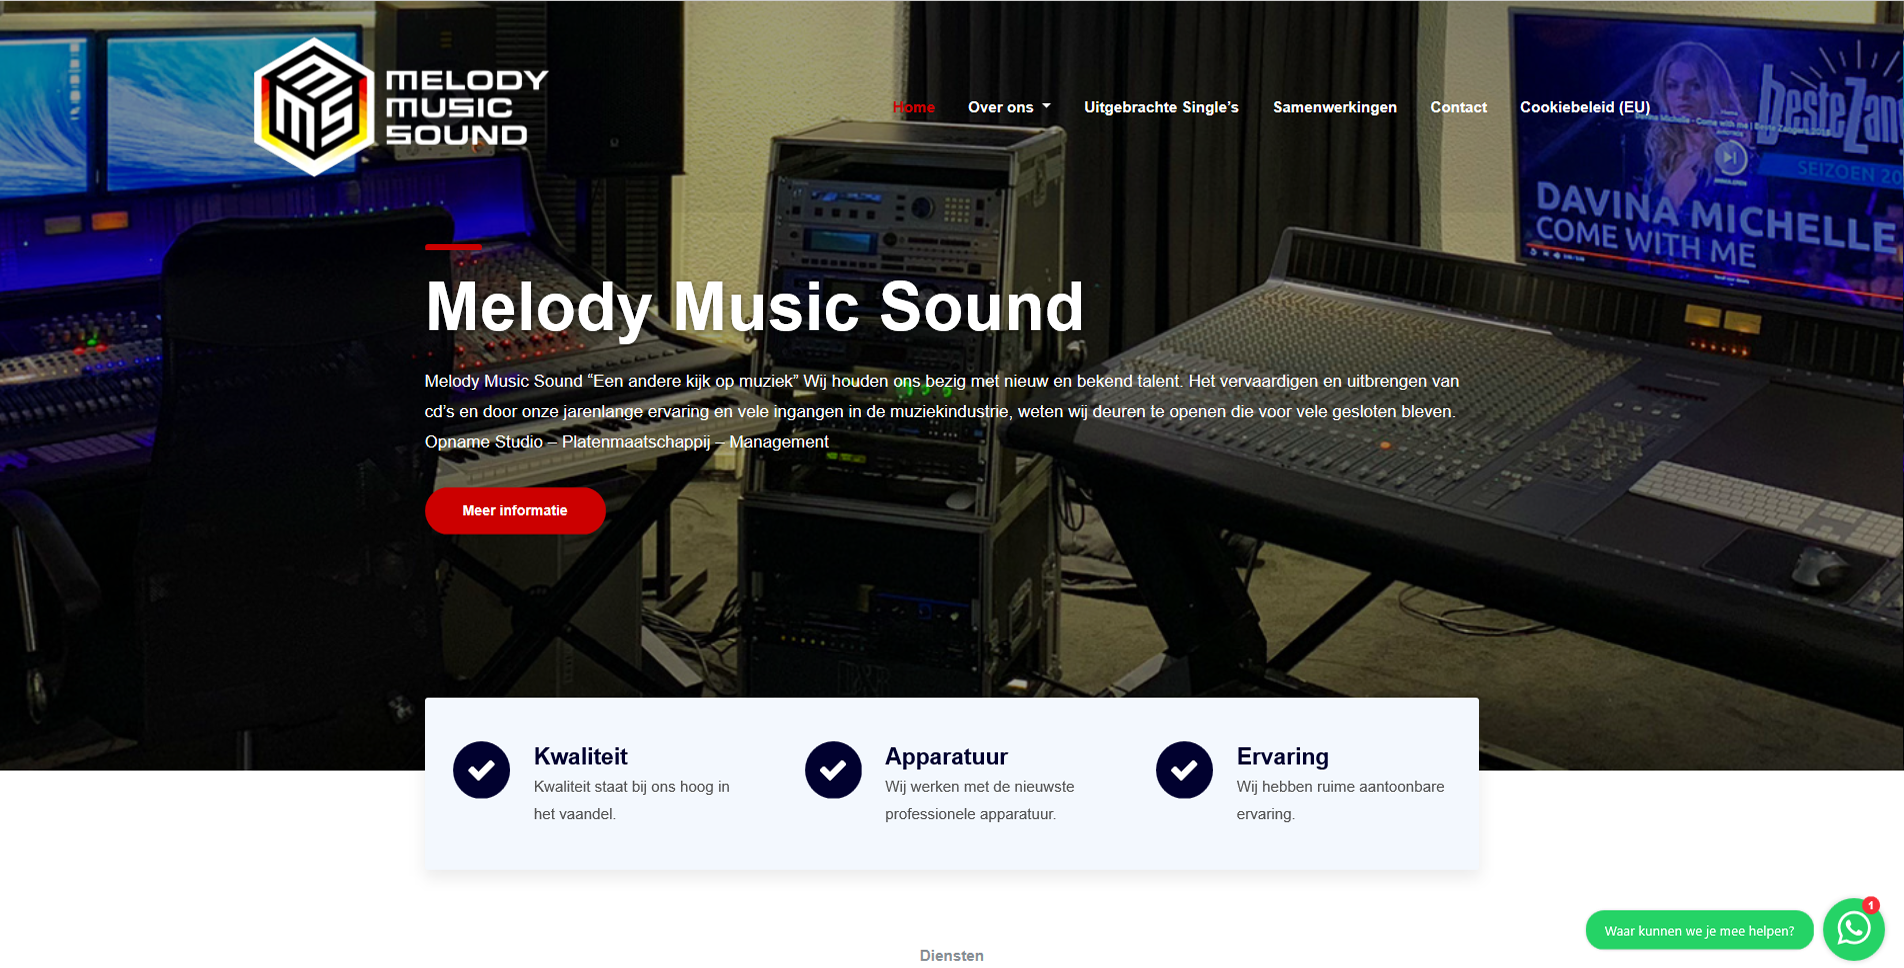 Melody Music Sound